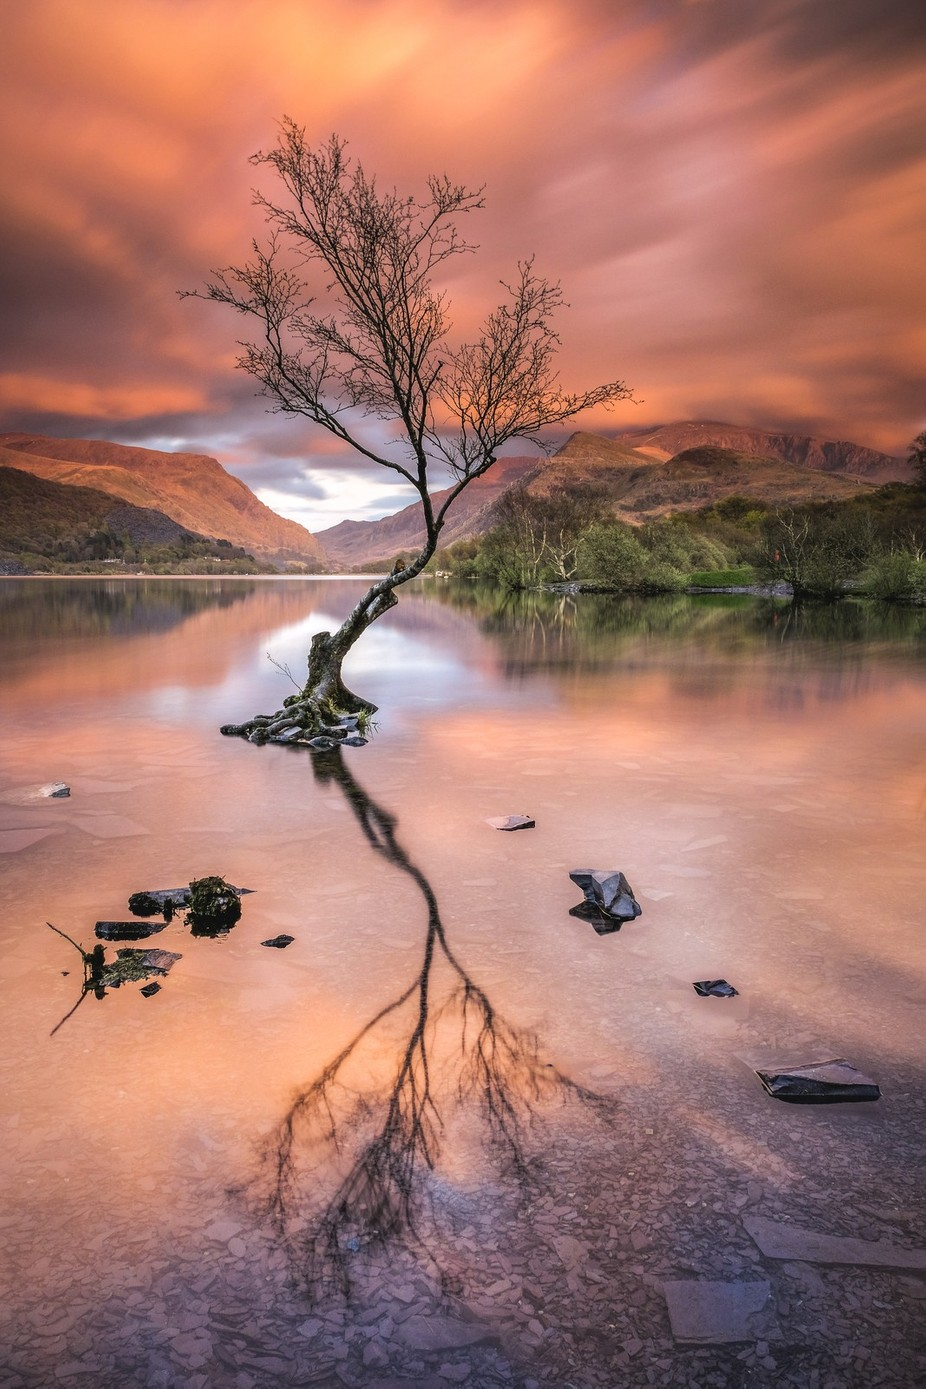 Lone Tree on Llyn Padarn by Vemsteroo - Monthly Pro Vol 27 Photo Contest